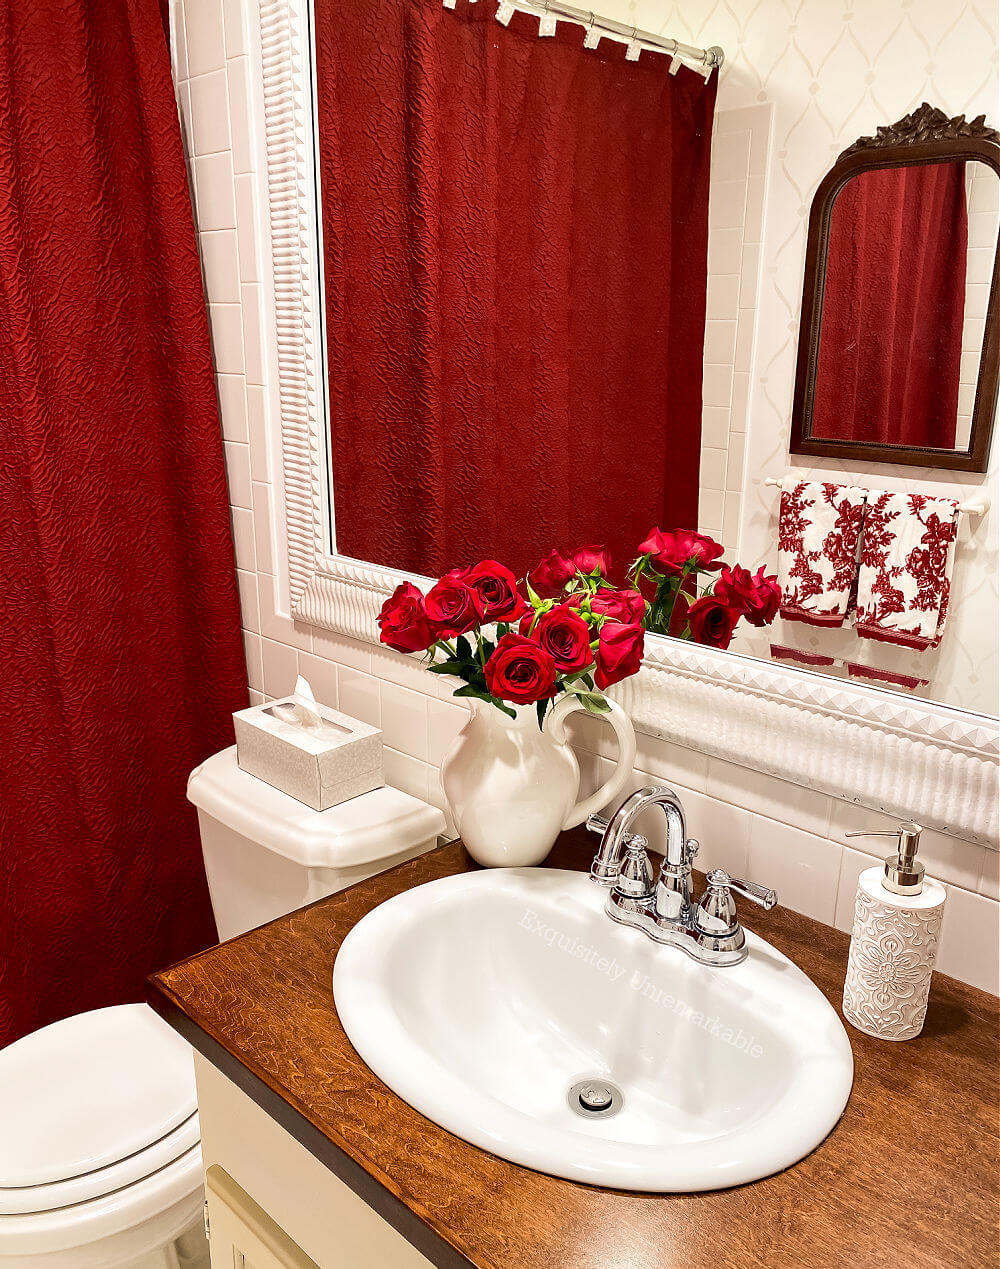 Red Shower Curtain In The Bath